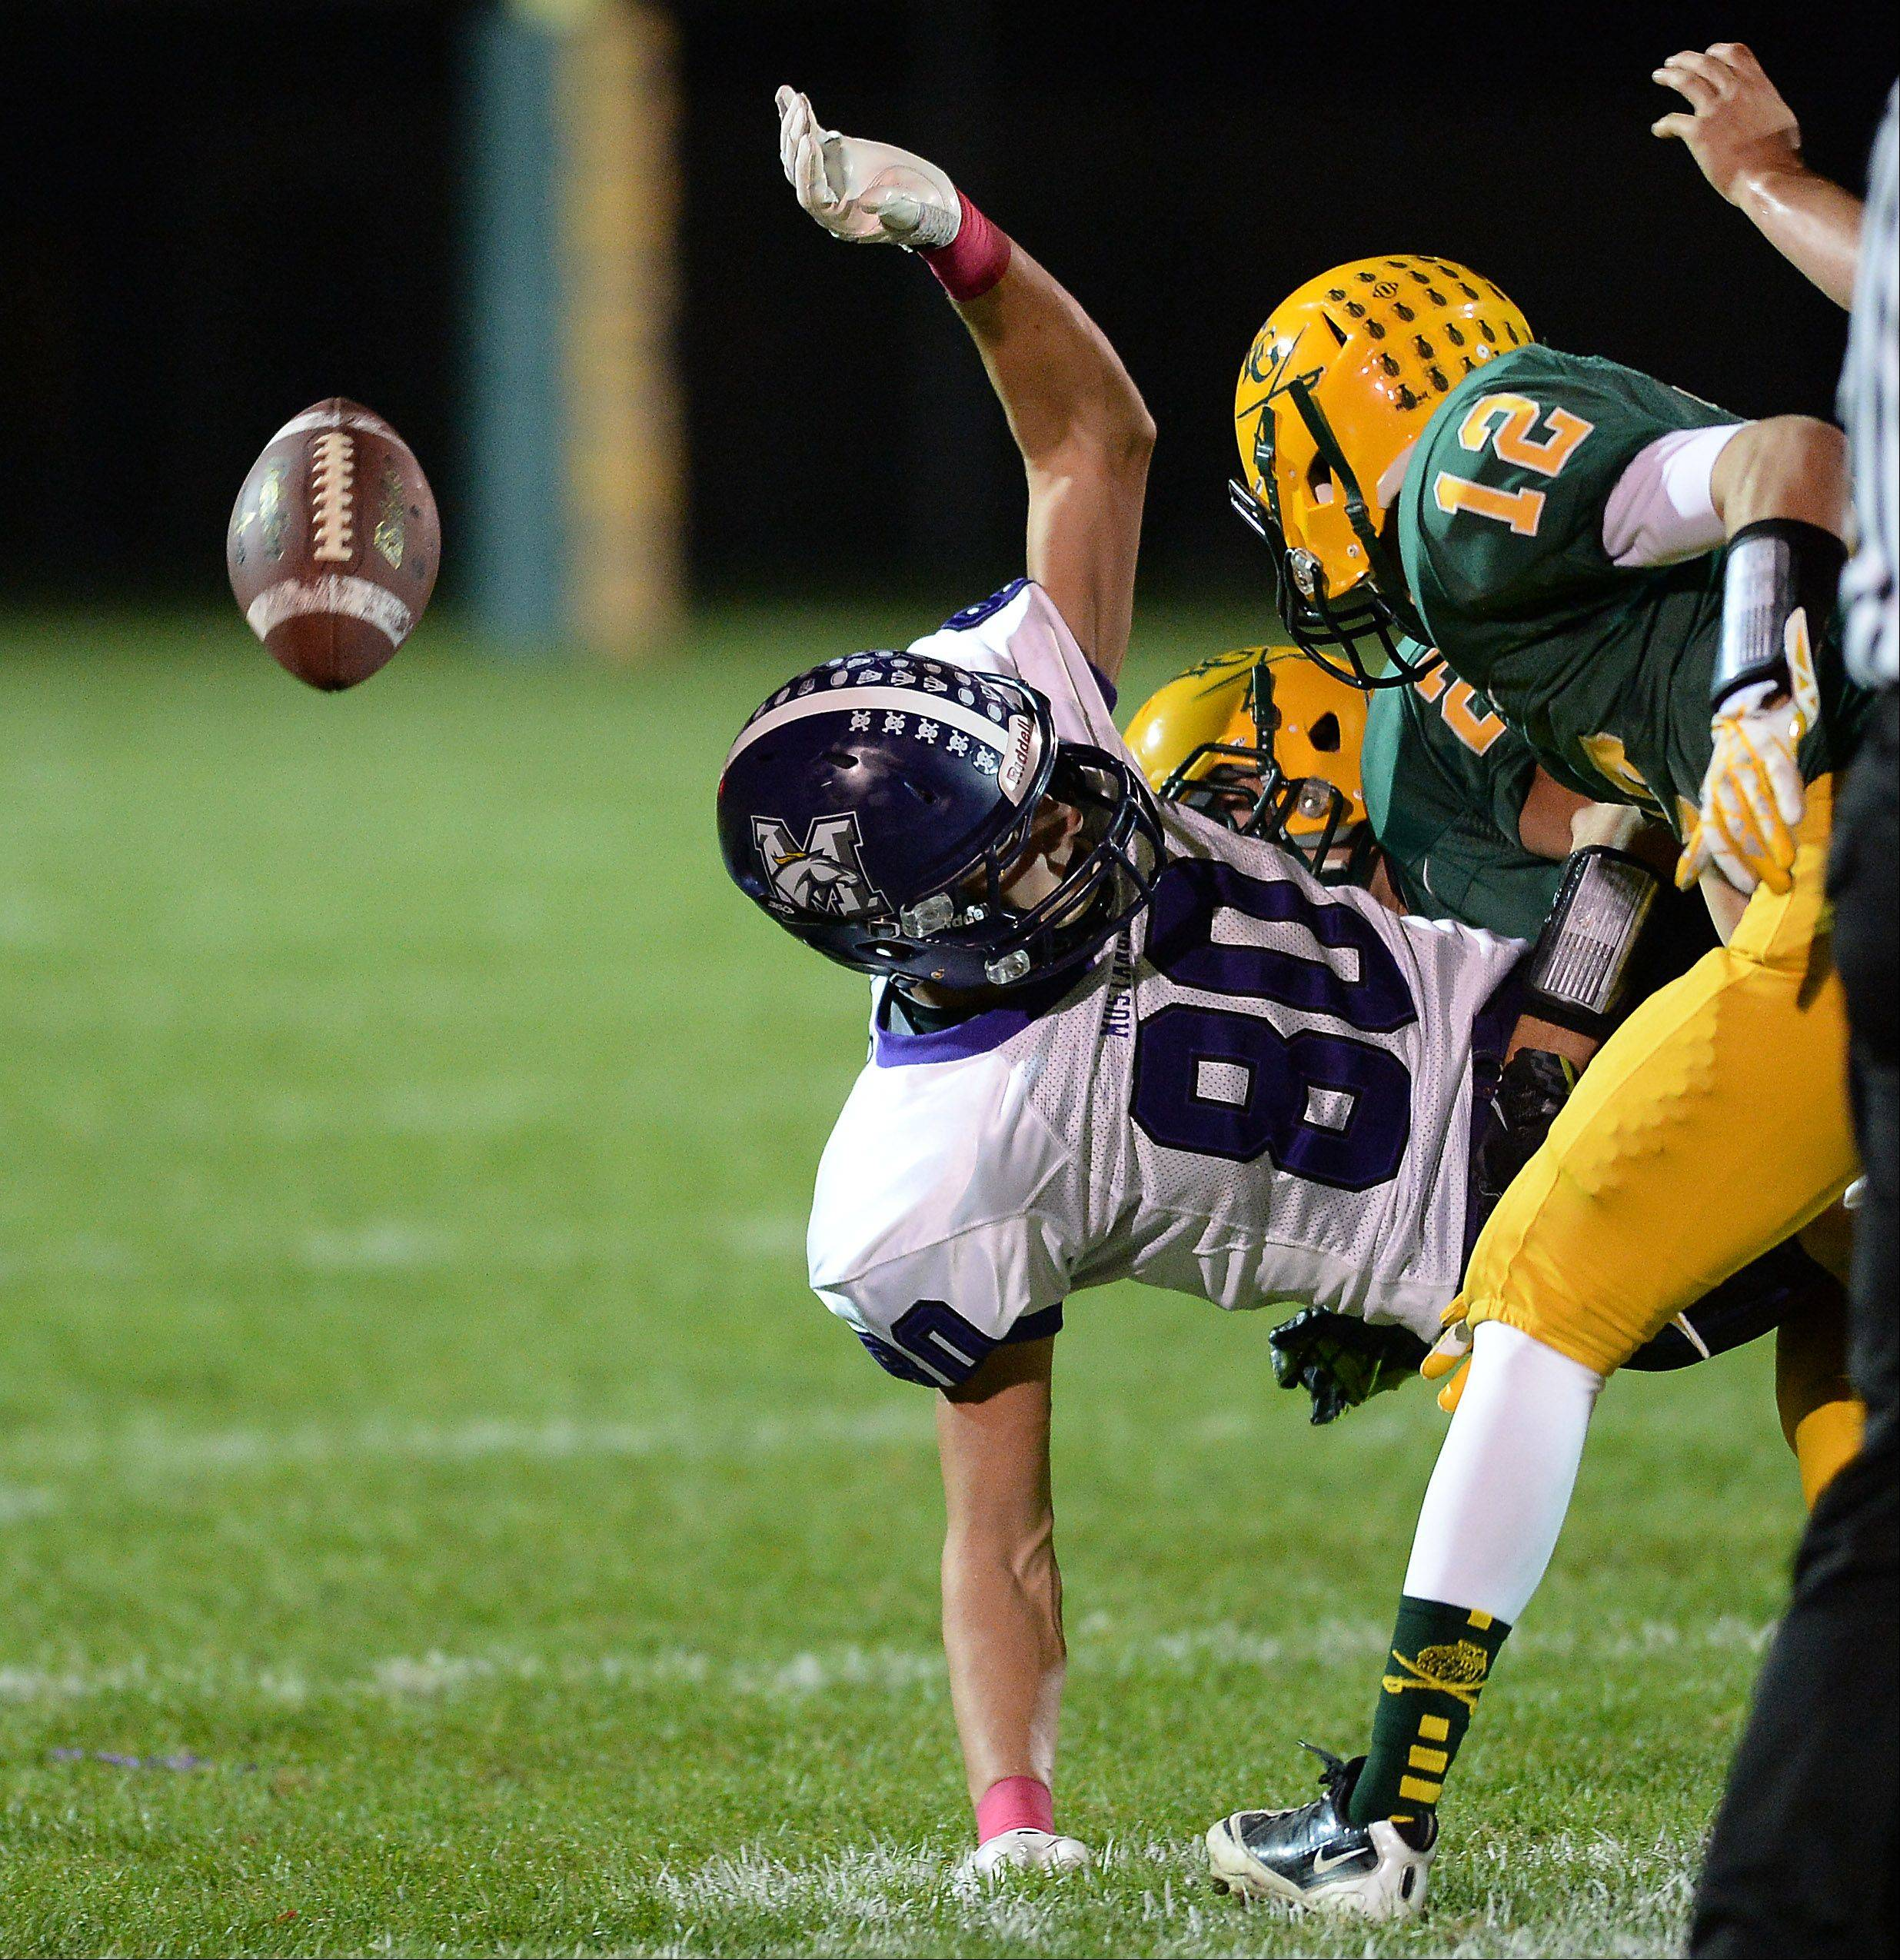 Rolling Meadows' Matt Dolan gets hit and fumbles the football in the process.